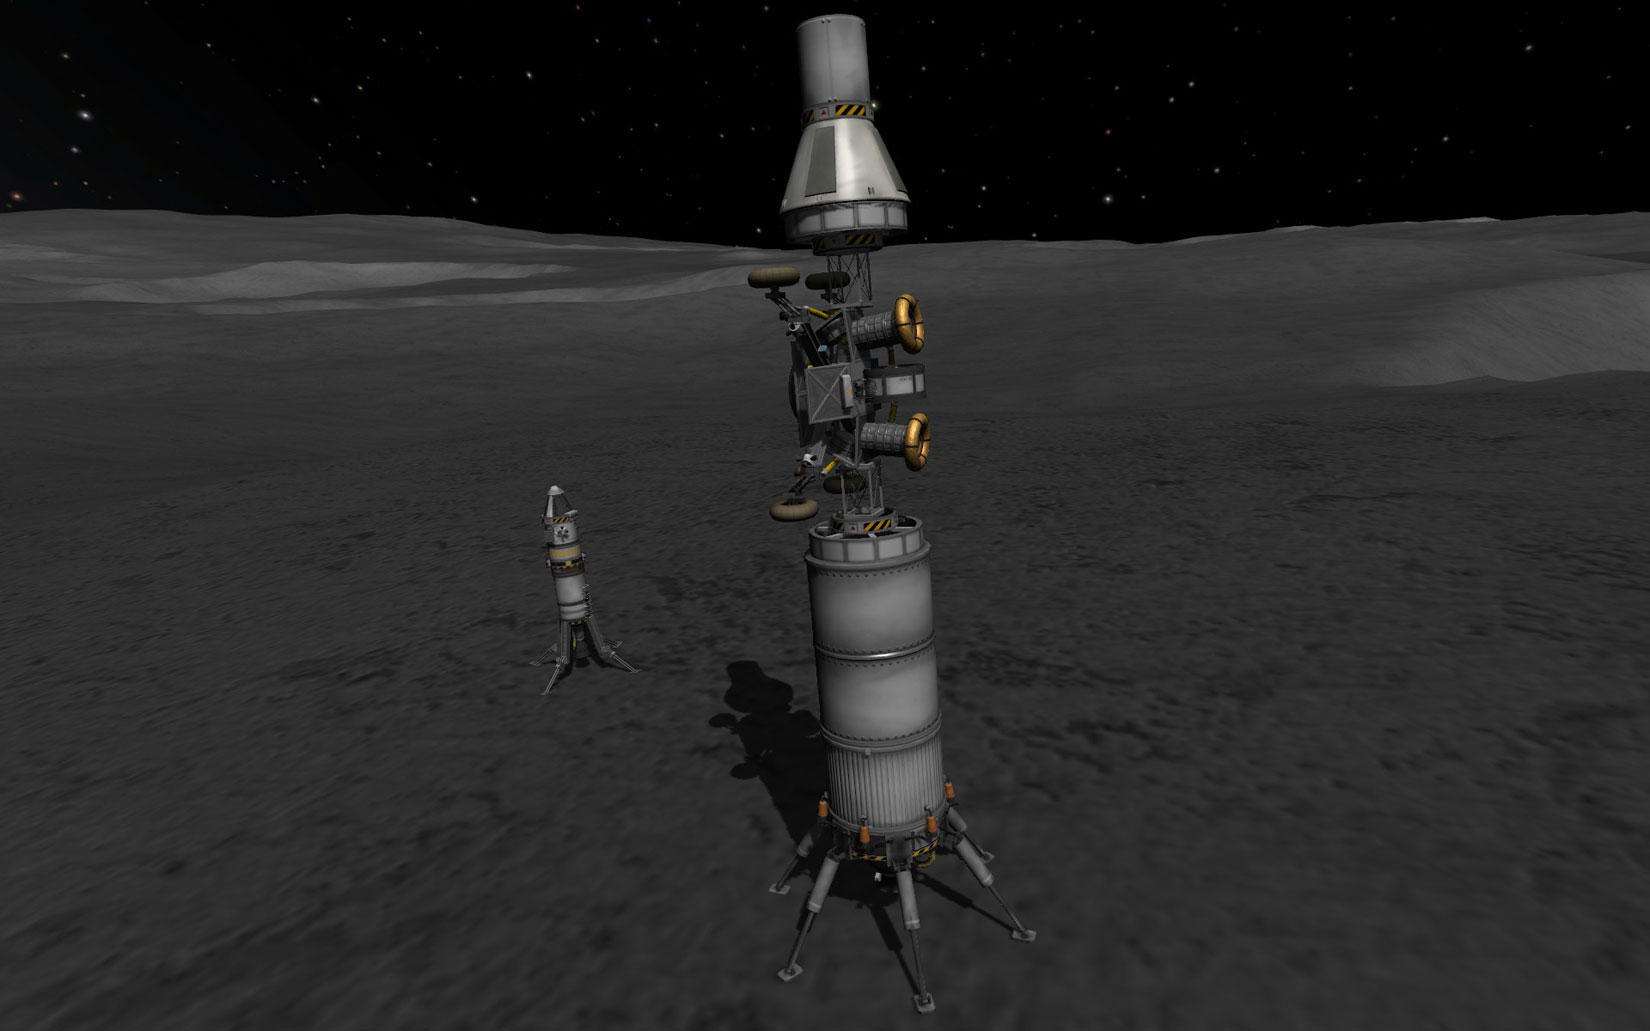 kerbal space program moon - photo #20